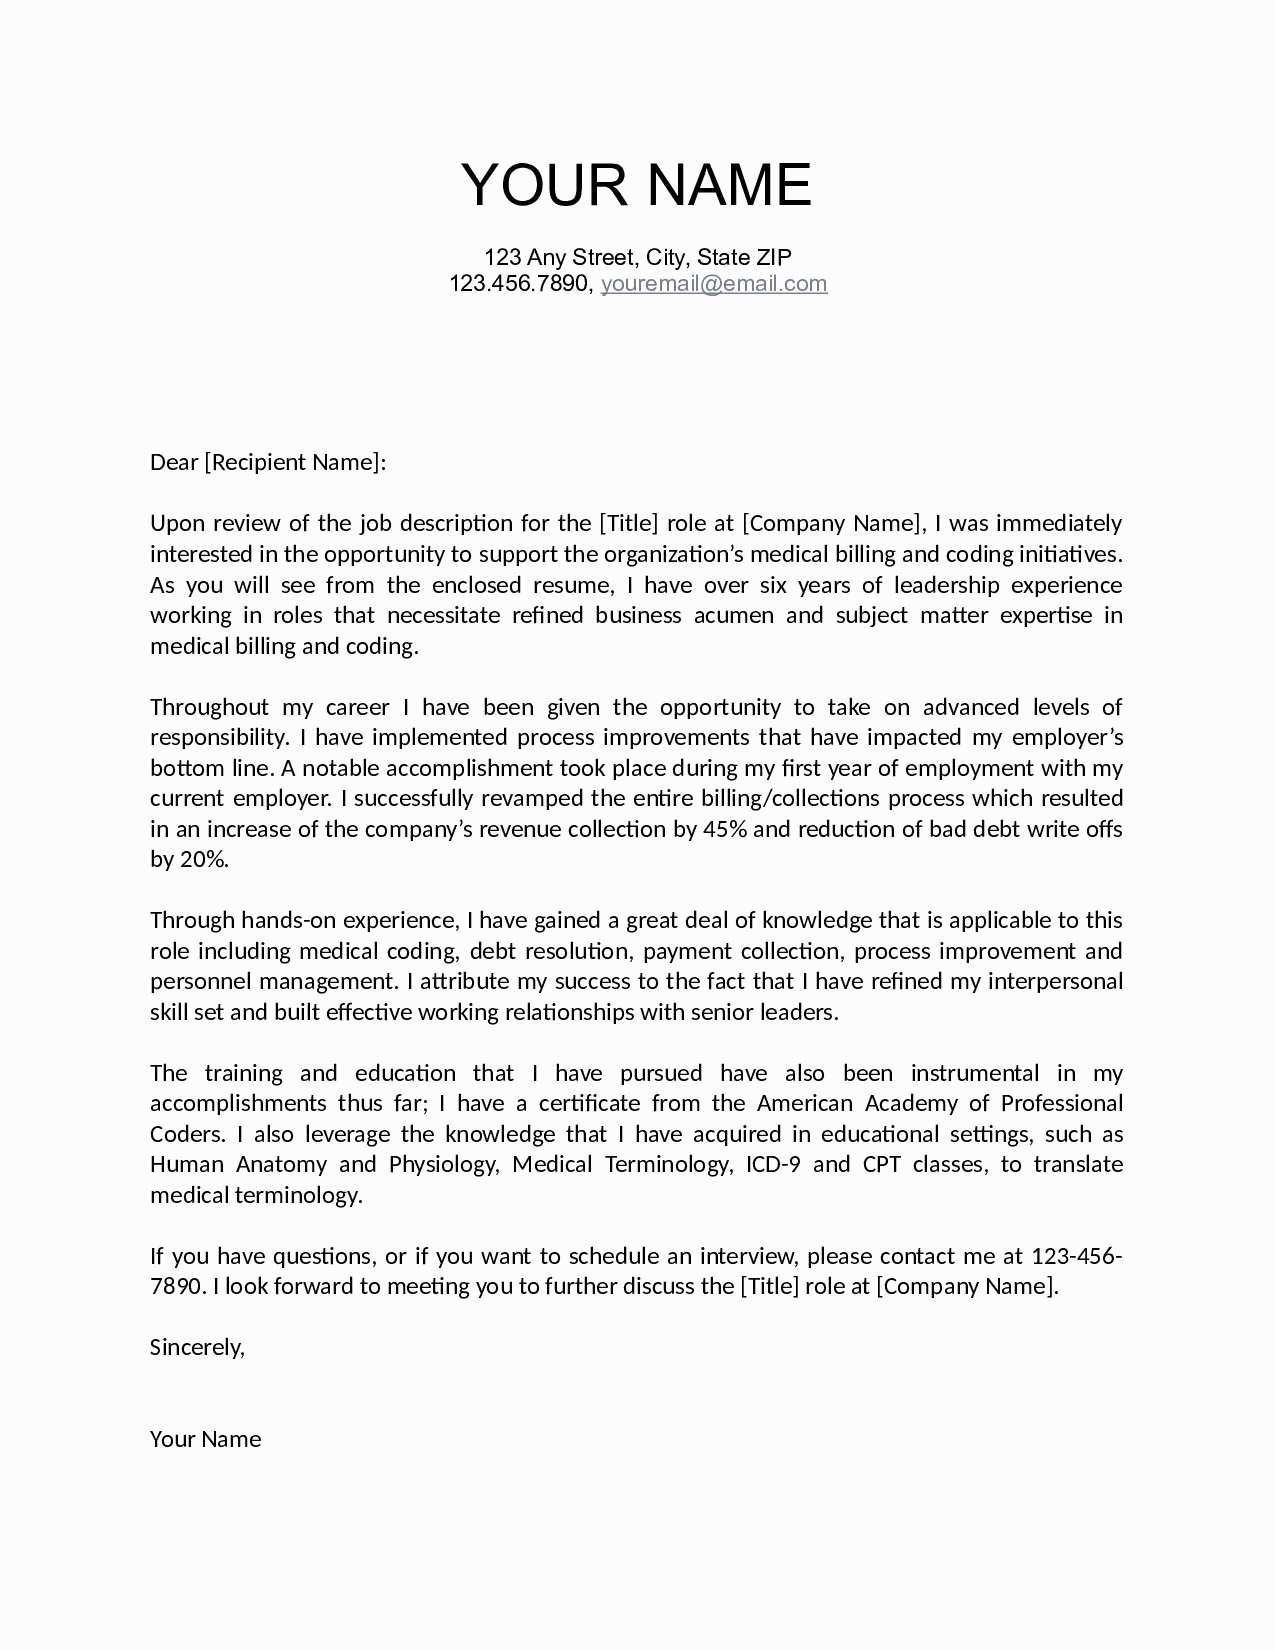 Basic Cover Letter Template Free - How to Write Covering Letter with Cv